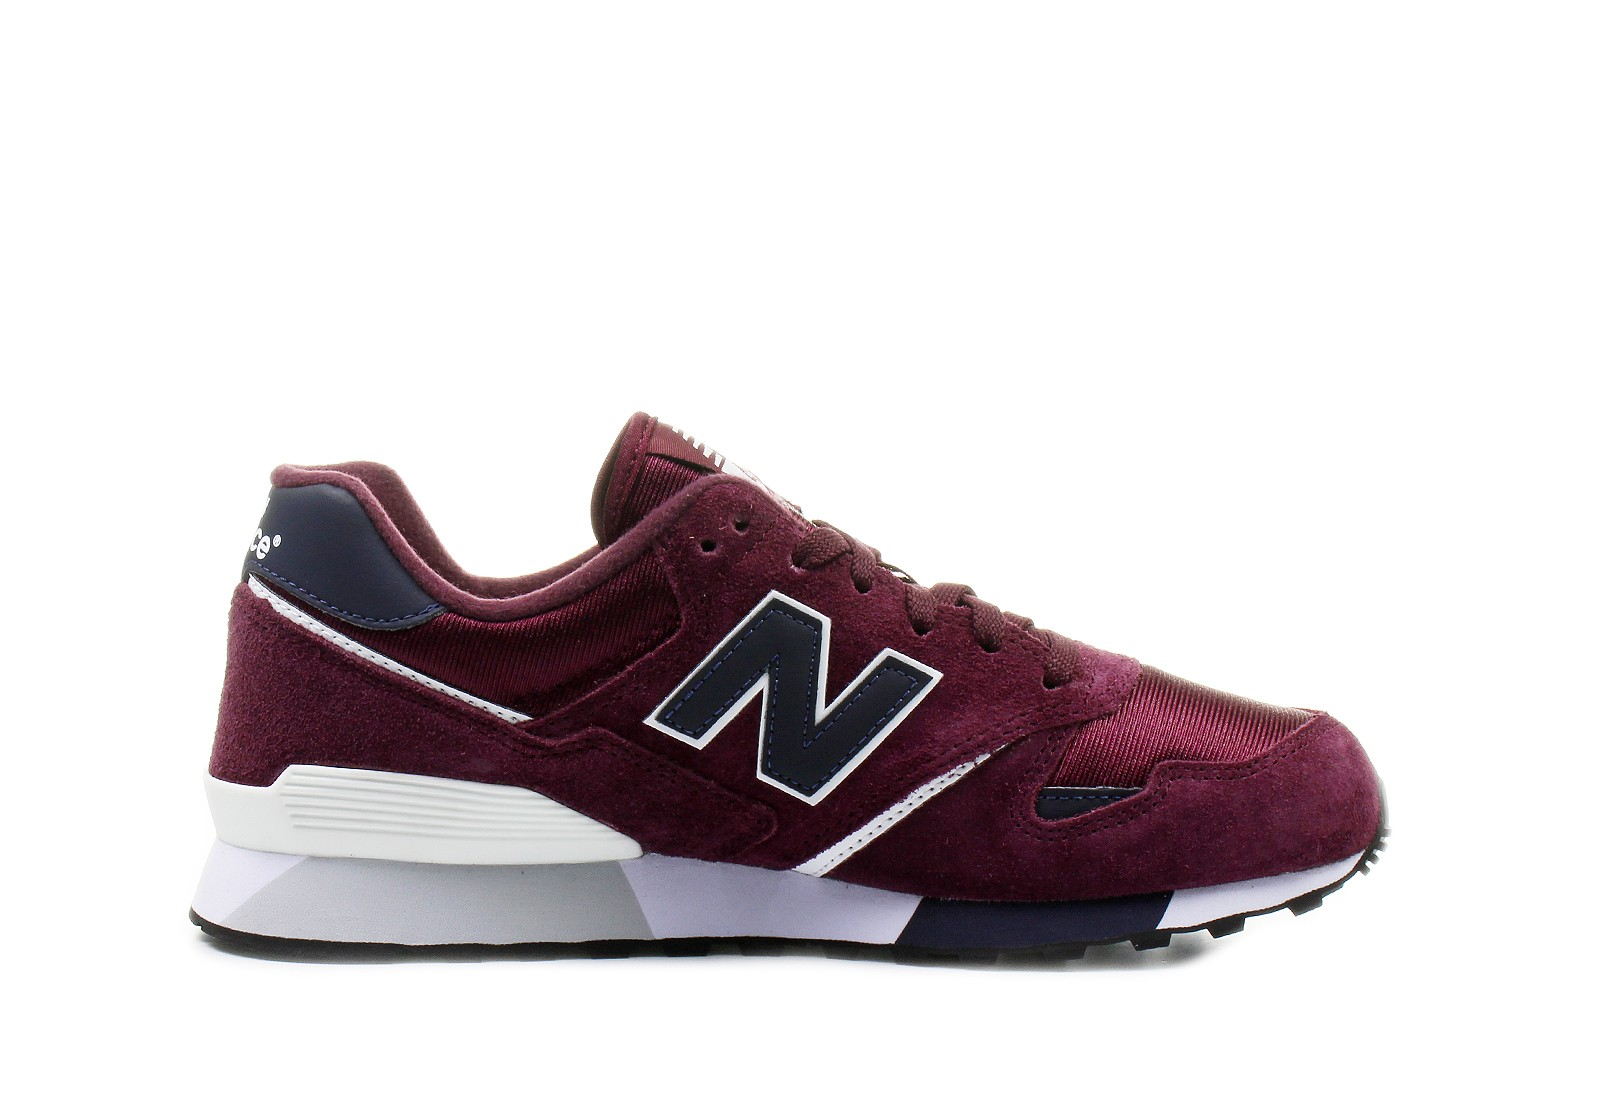 New Balance creates lines of clothing, shoes and accessories to help athletes to always give their best. Between functionality and design, products such as the classic trainers and running shoes feature technological solutions to deliver cushioning, lightness and stability.